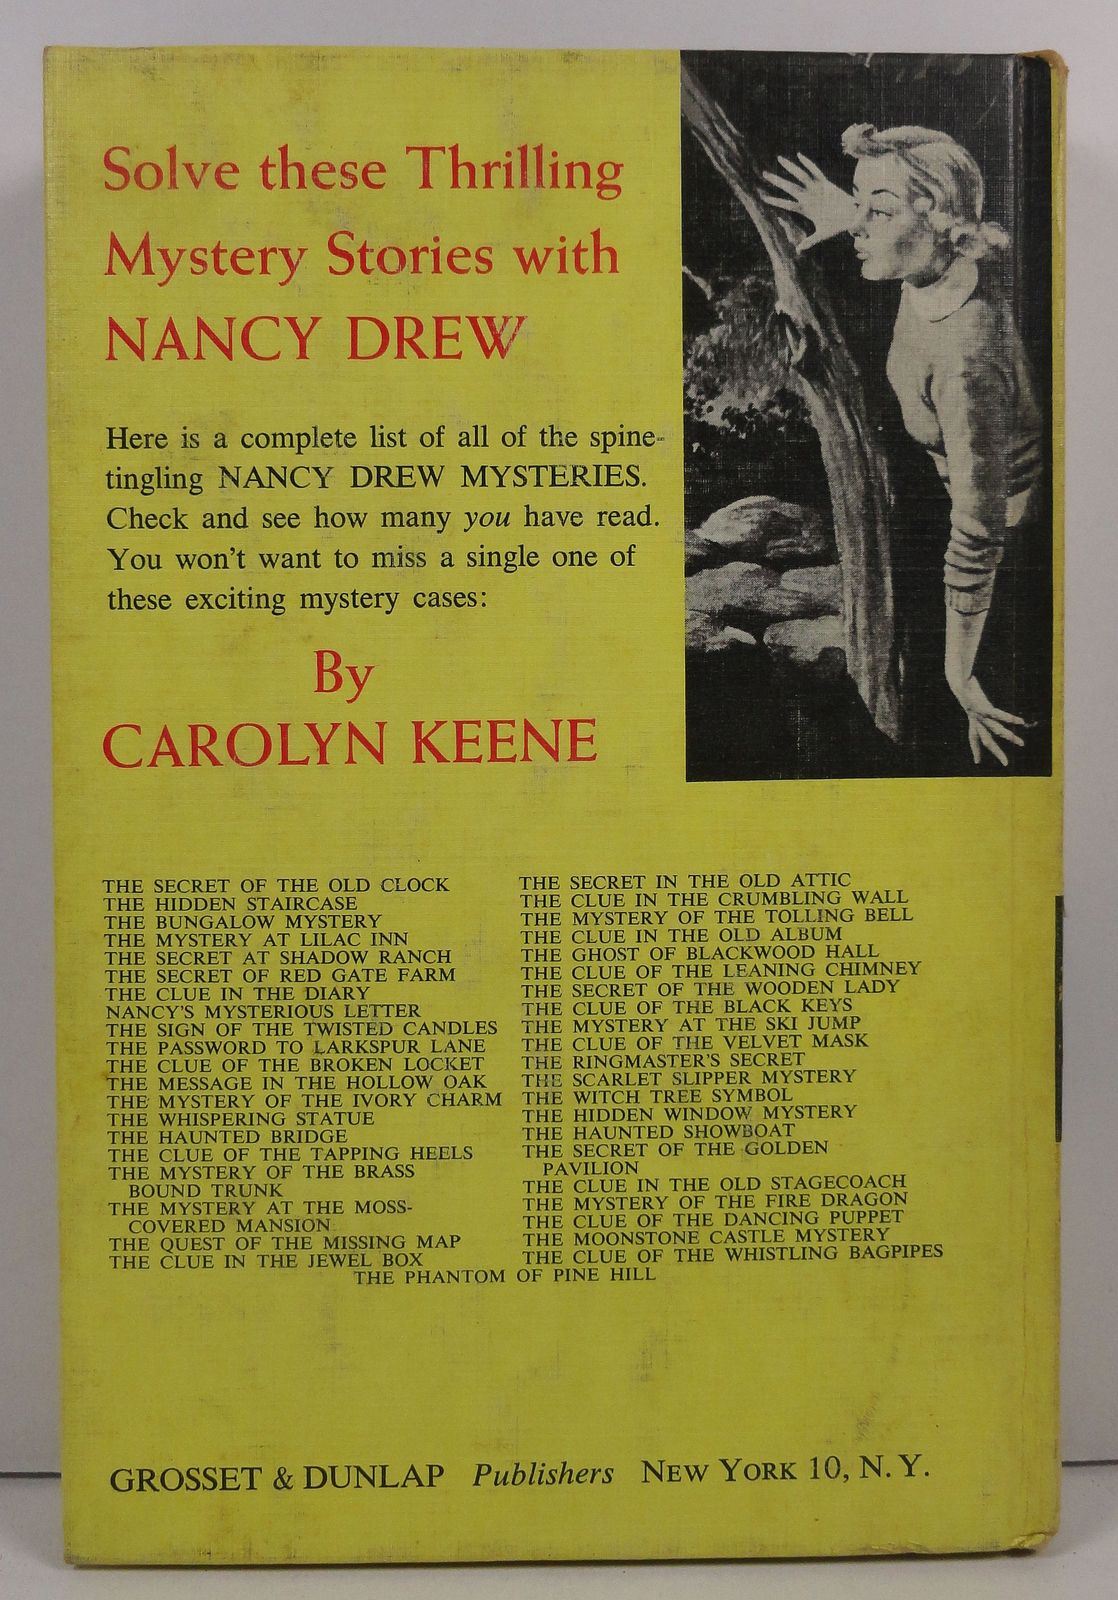 Nancy Drew The Secret of Red Gate Farm by Carolyn Keene